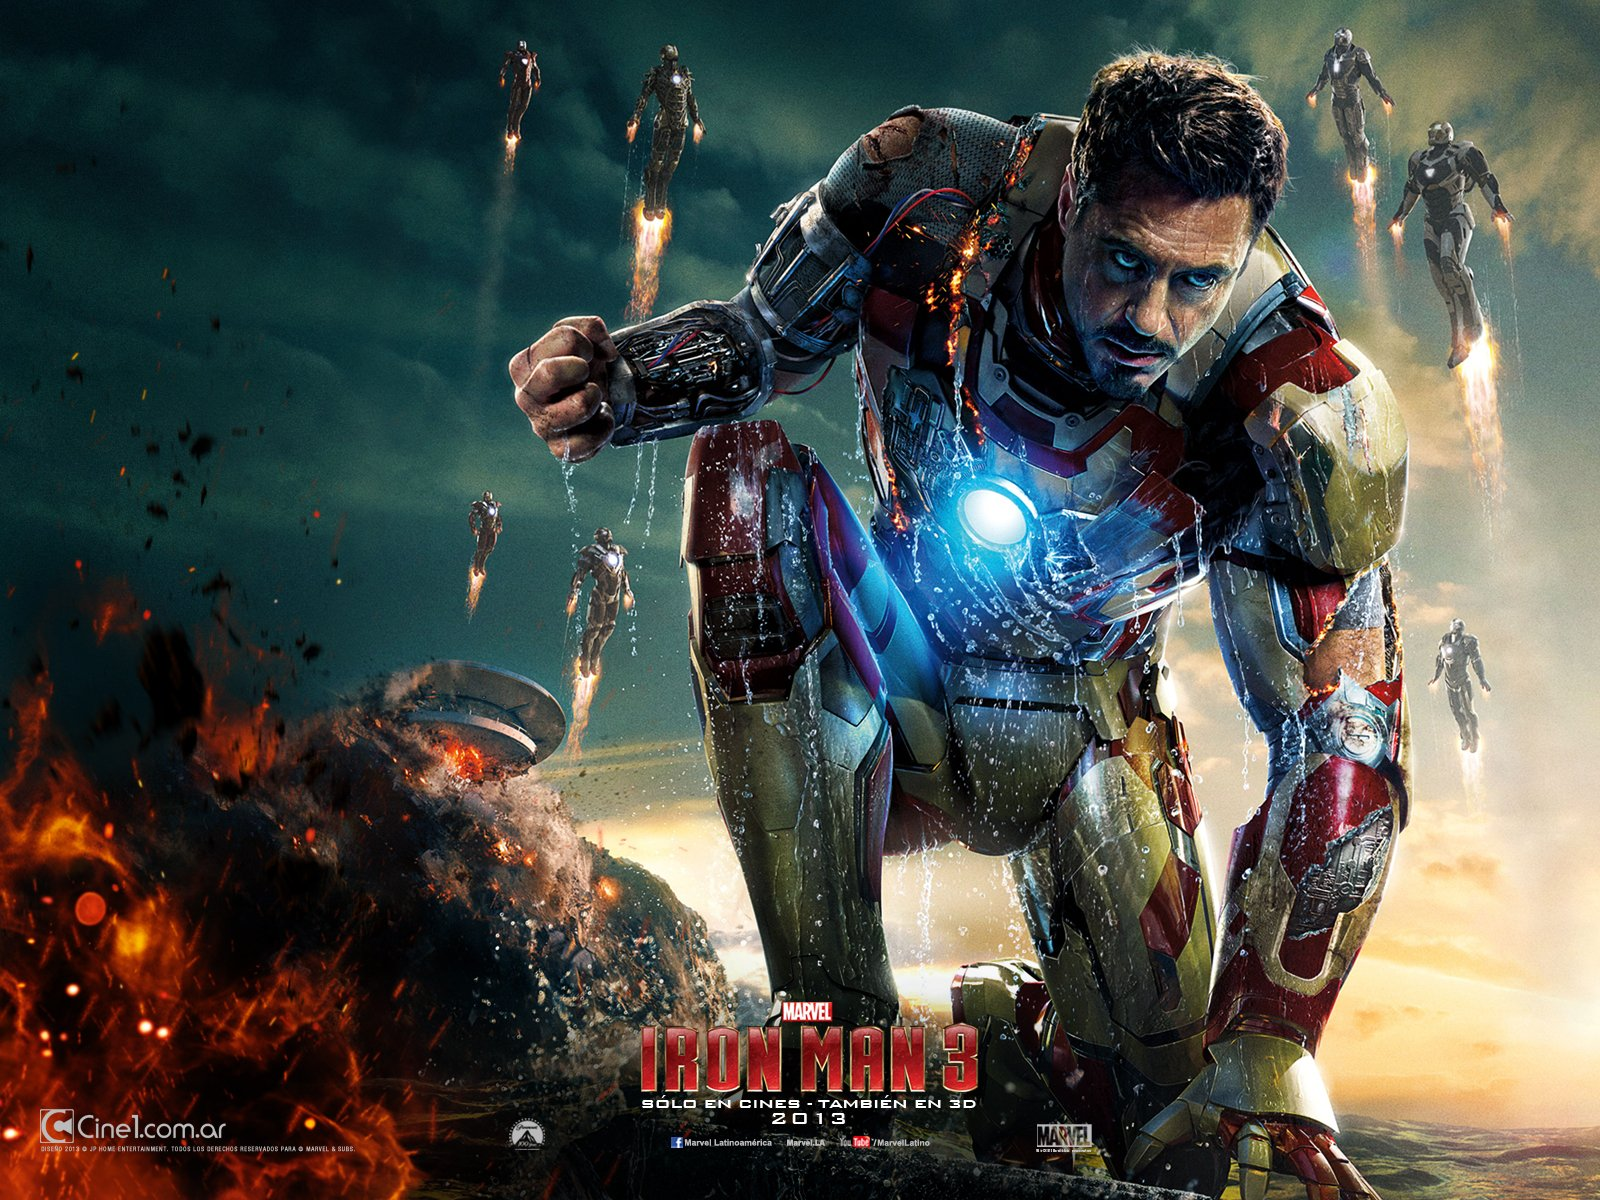 Wallpaper Iron Man 3 1600x1200 V8 Cine 1jpg 1600x1200